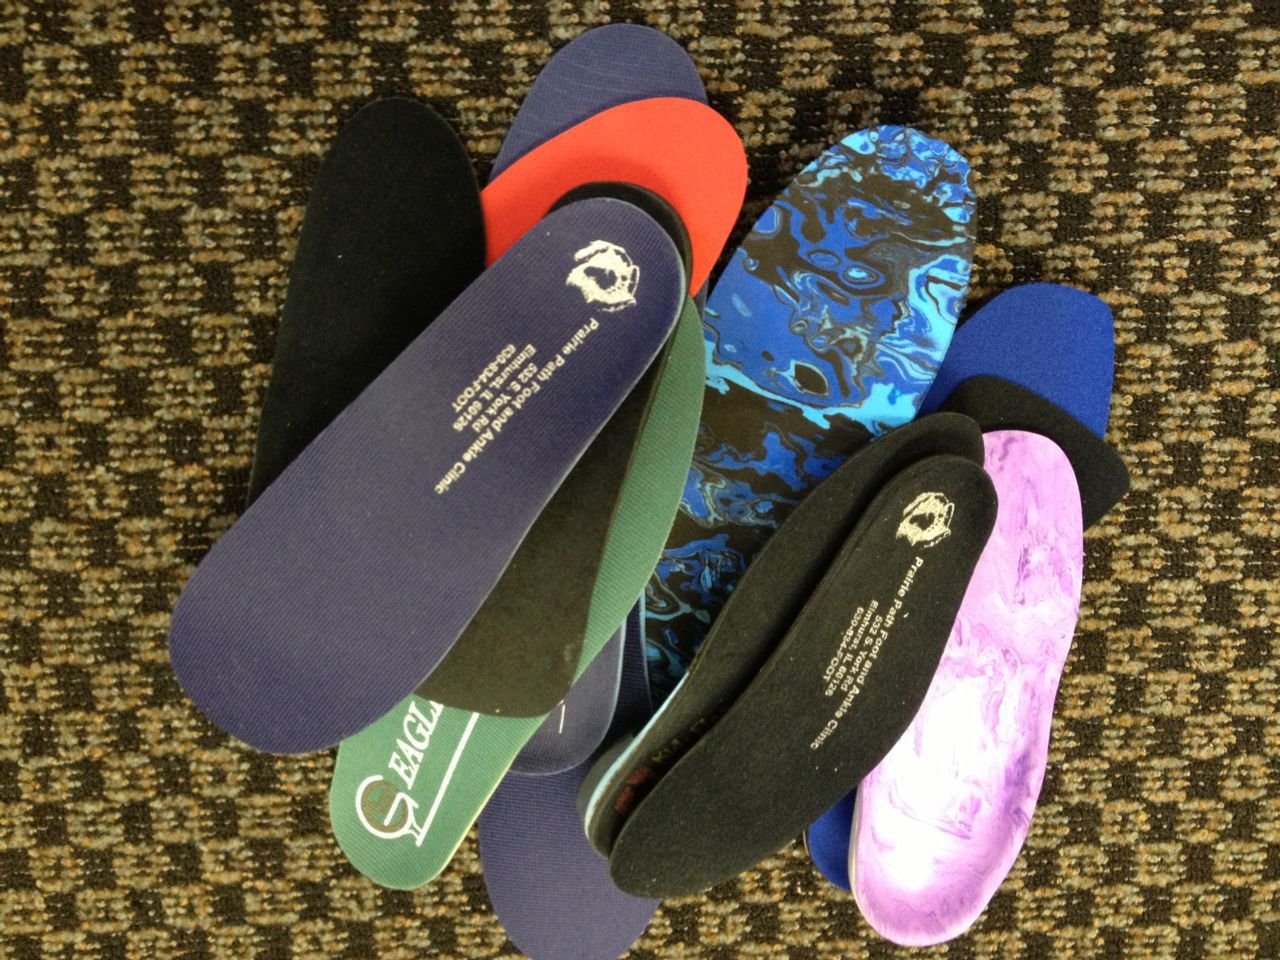 different types of orthotics in a pile